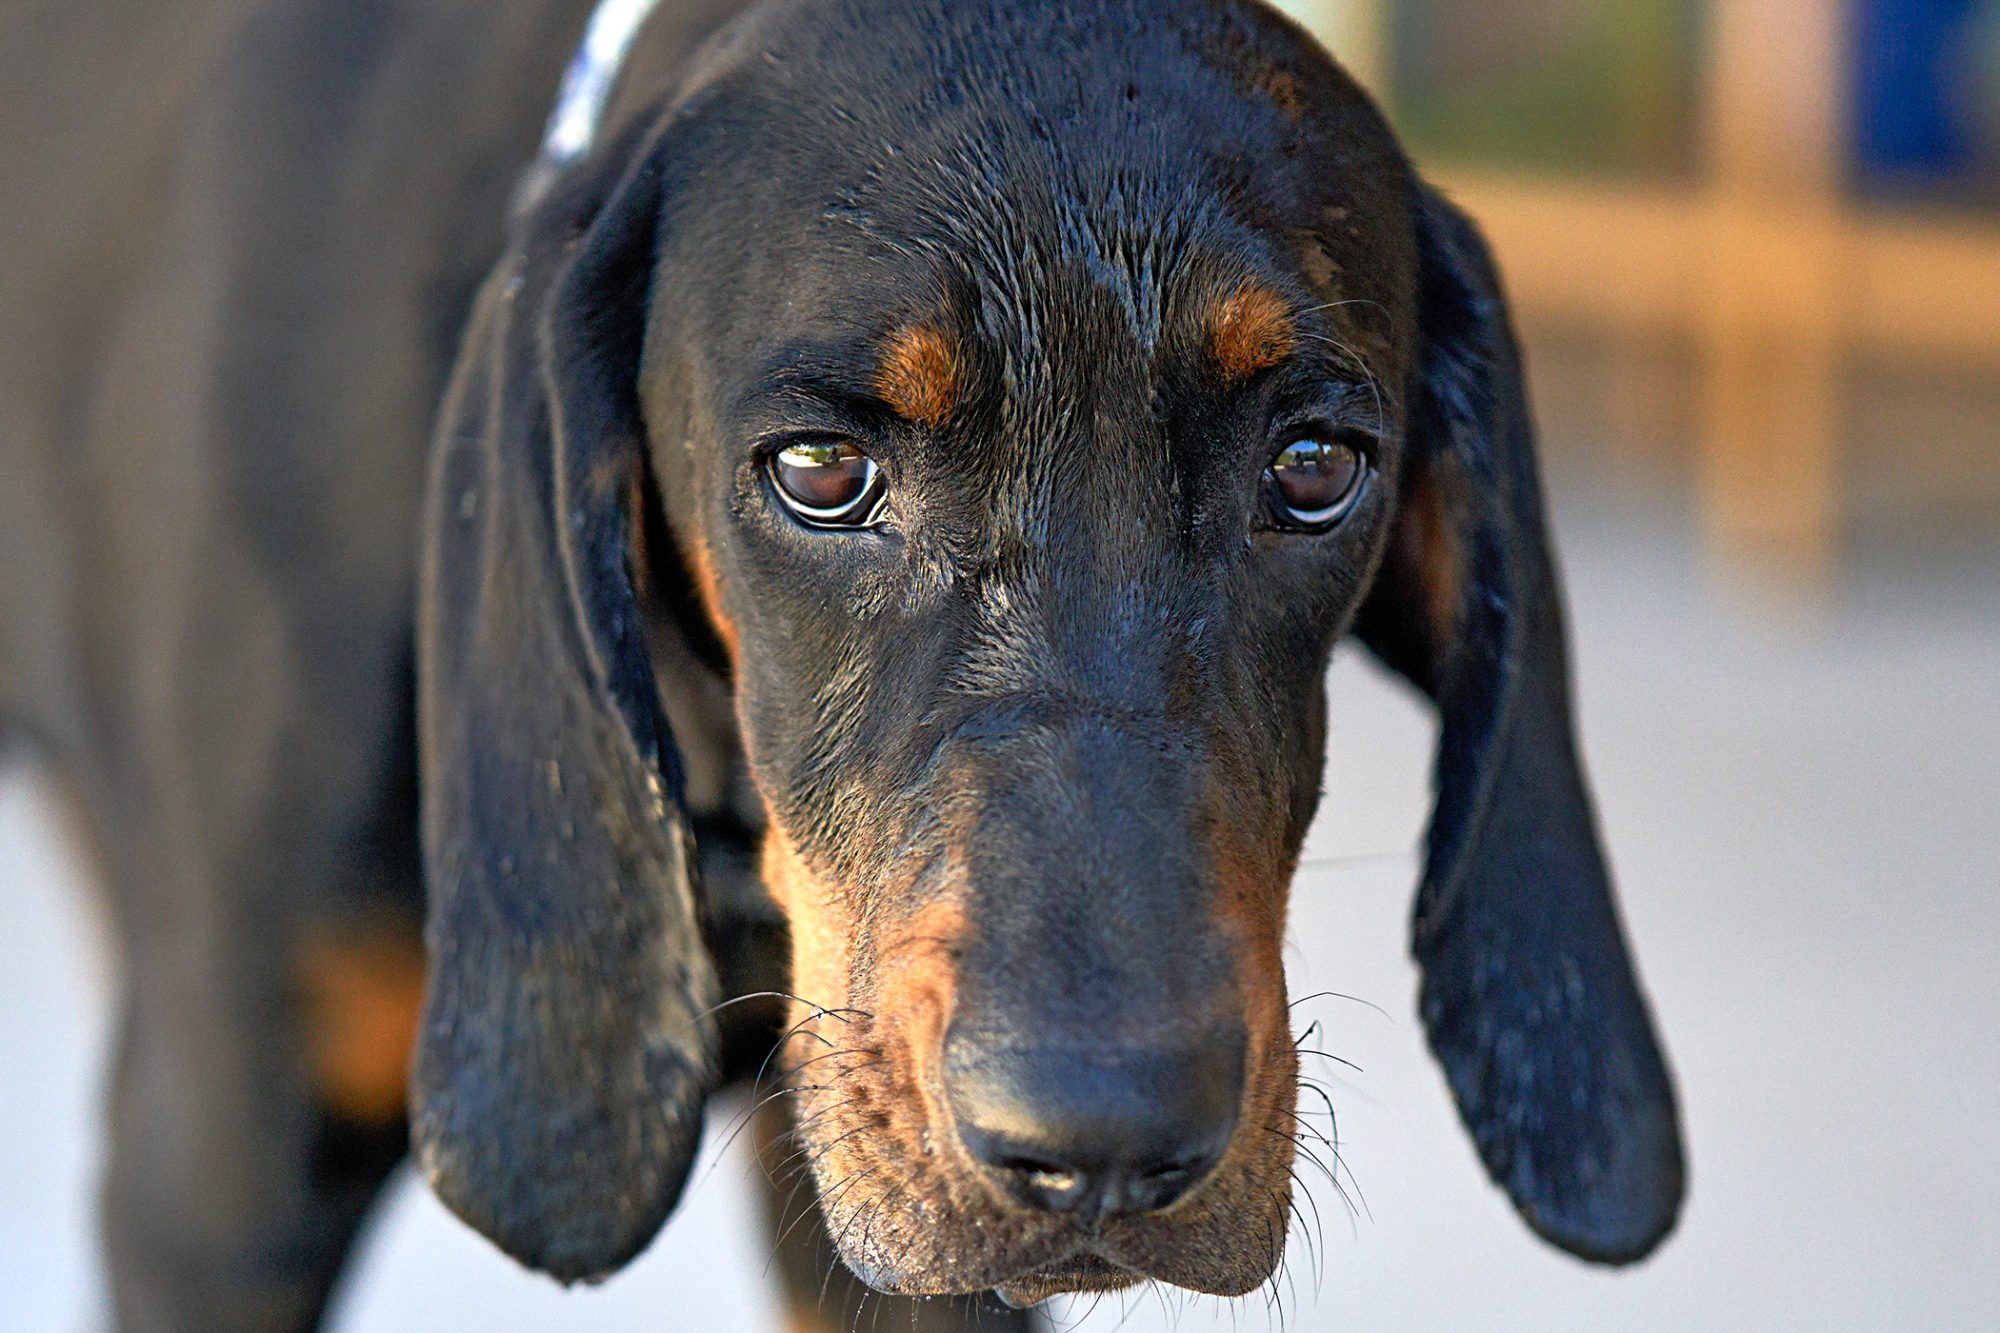 black and tan coonhound close up with sad face